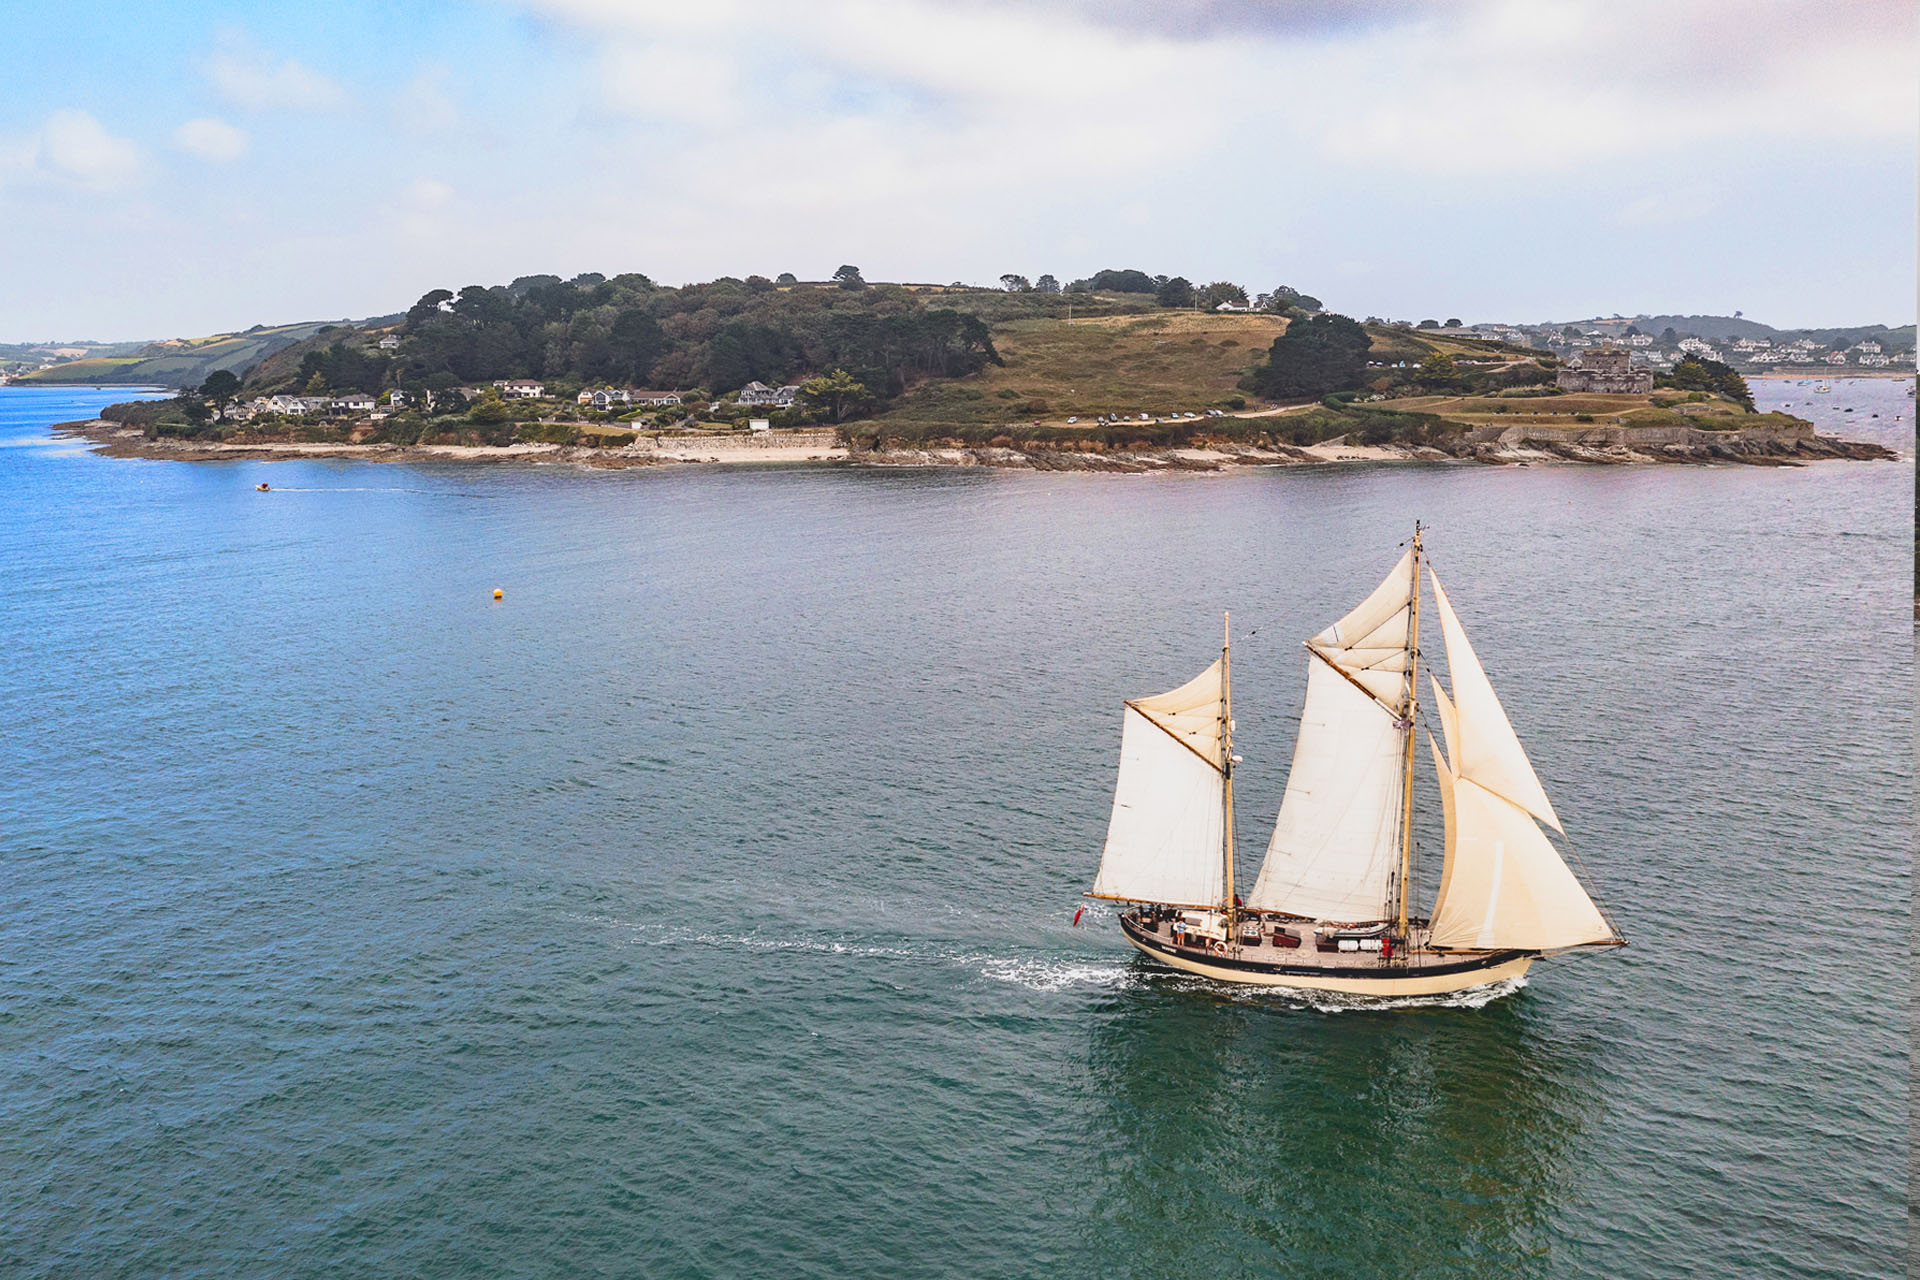 Maybe Sailing off St mawes